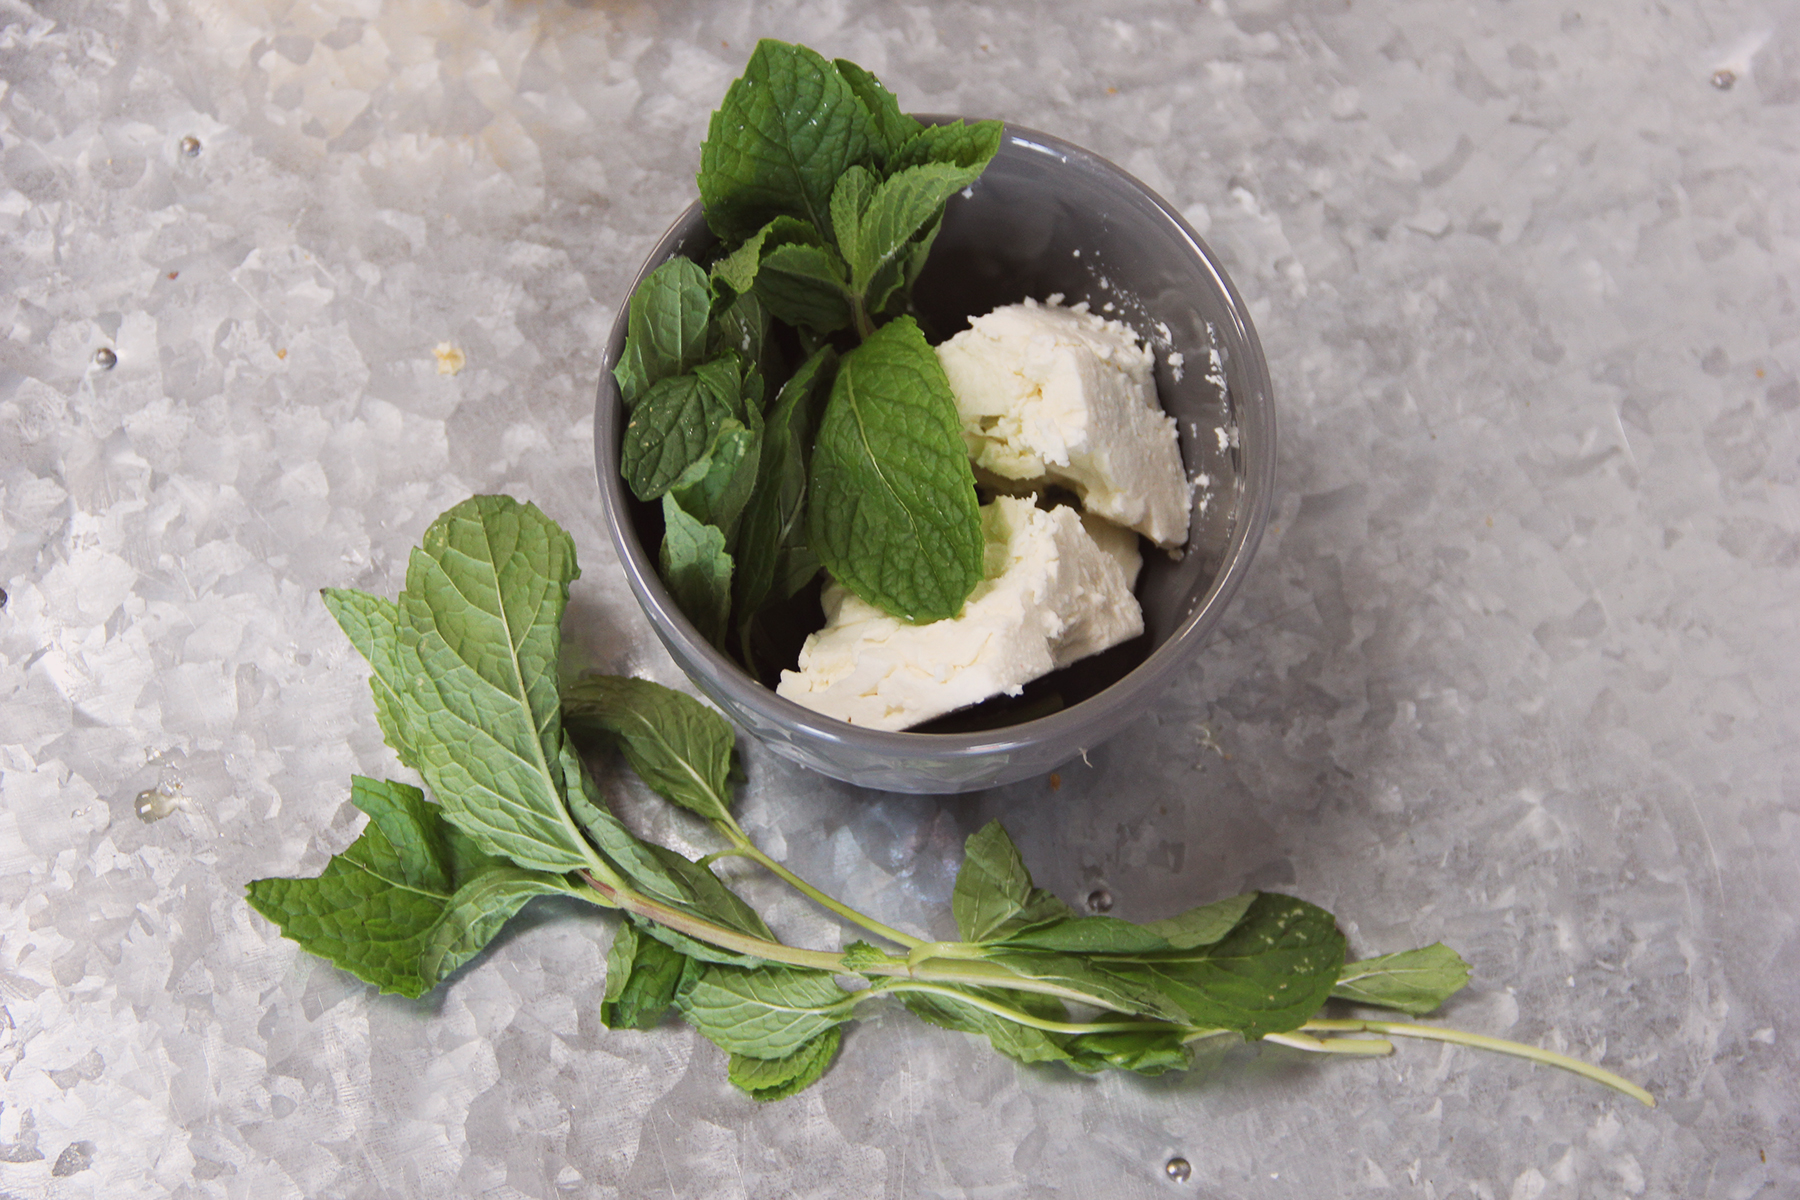 Fetta cheese and mint